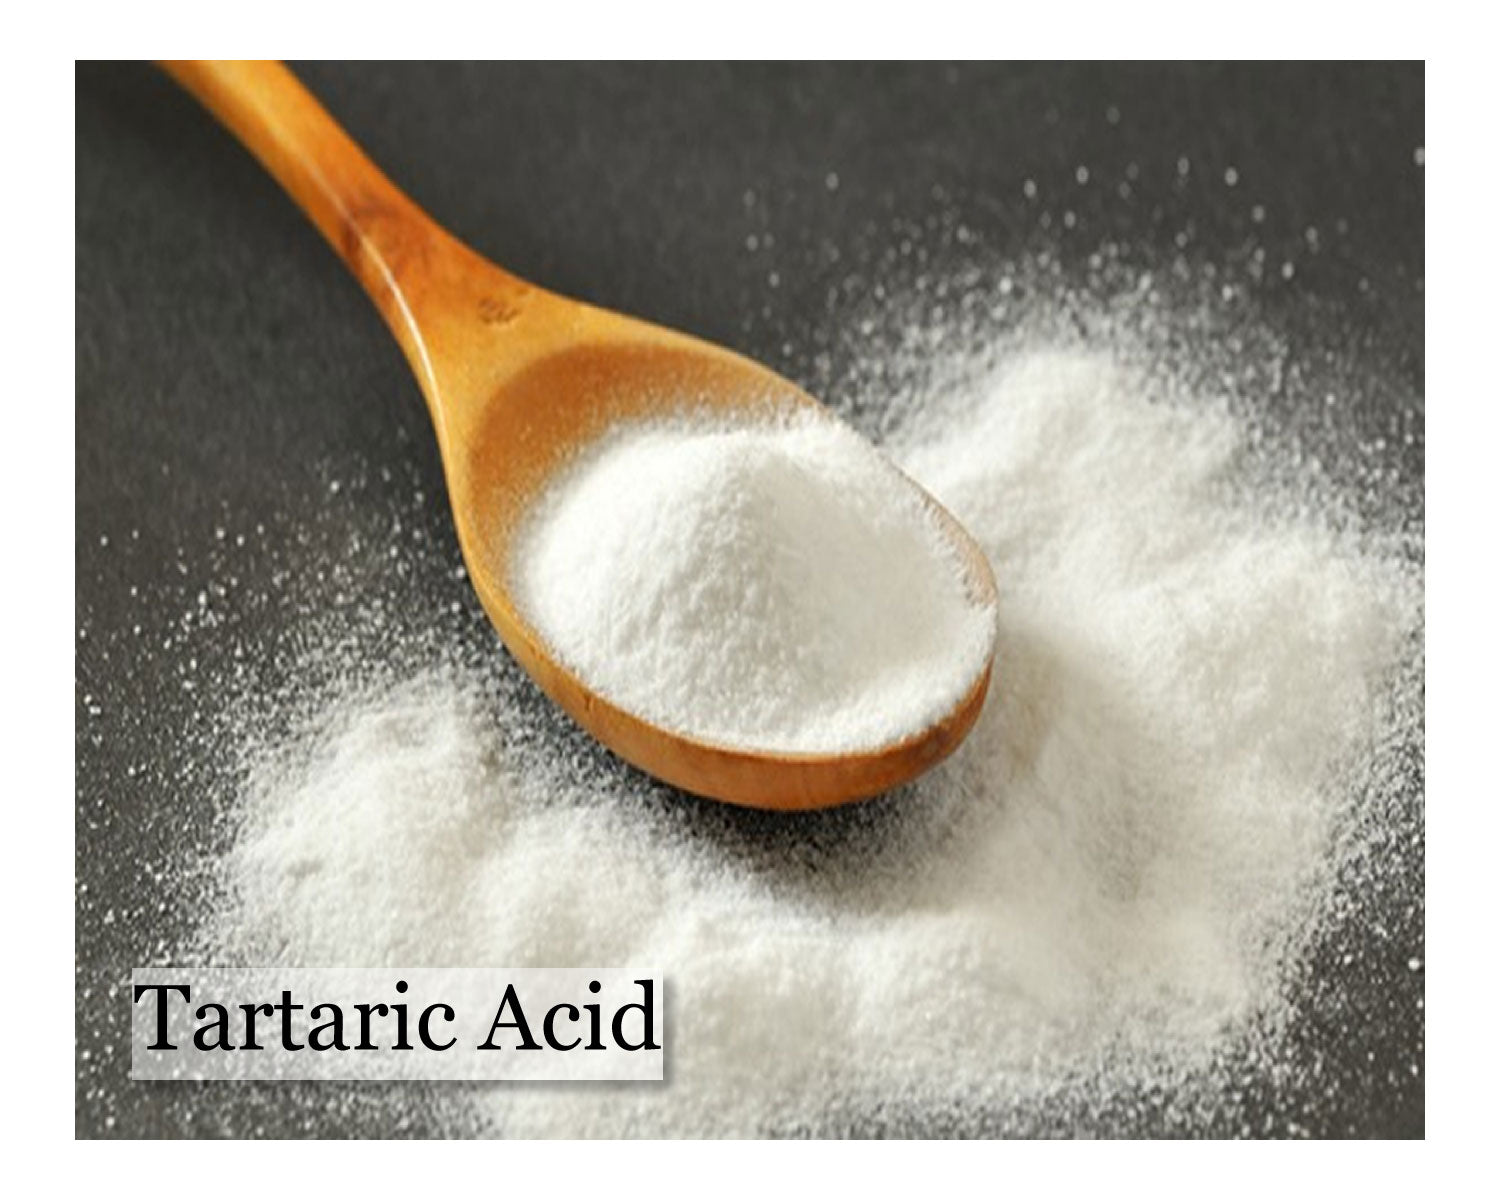 Tartaric Acid - 1 oz